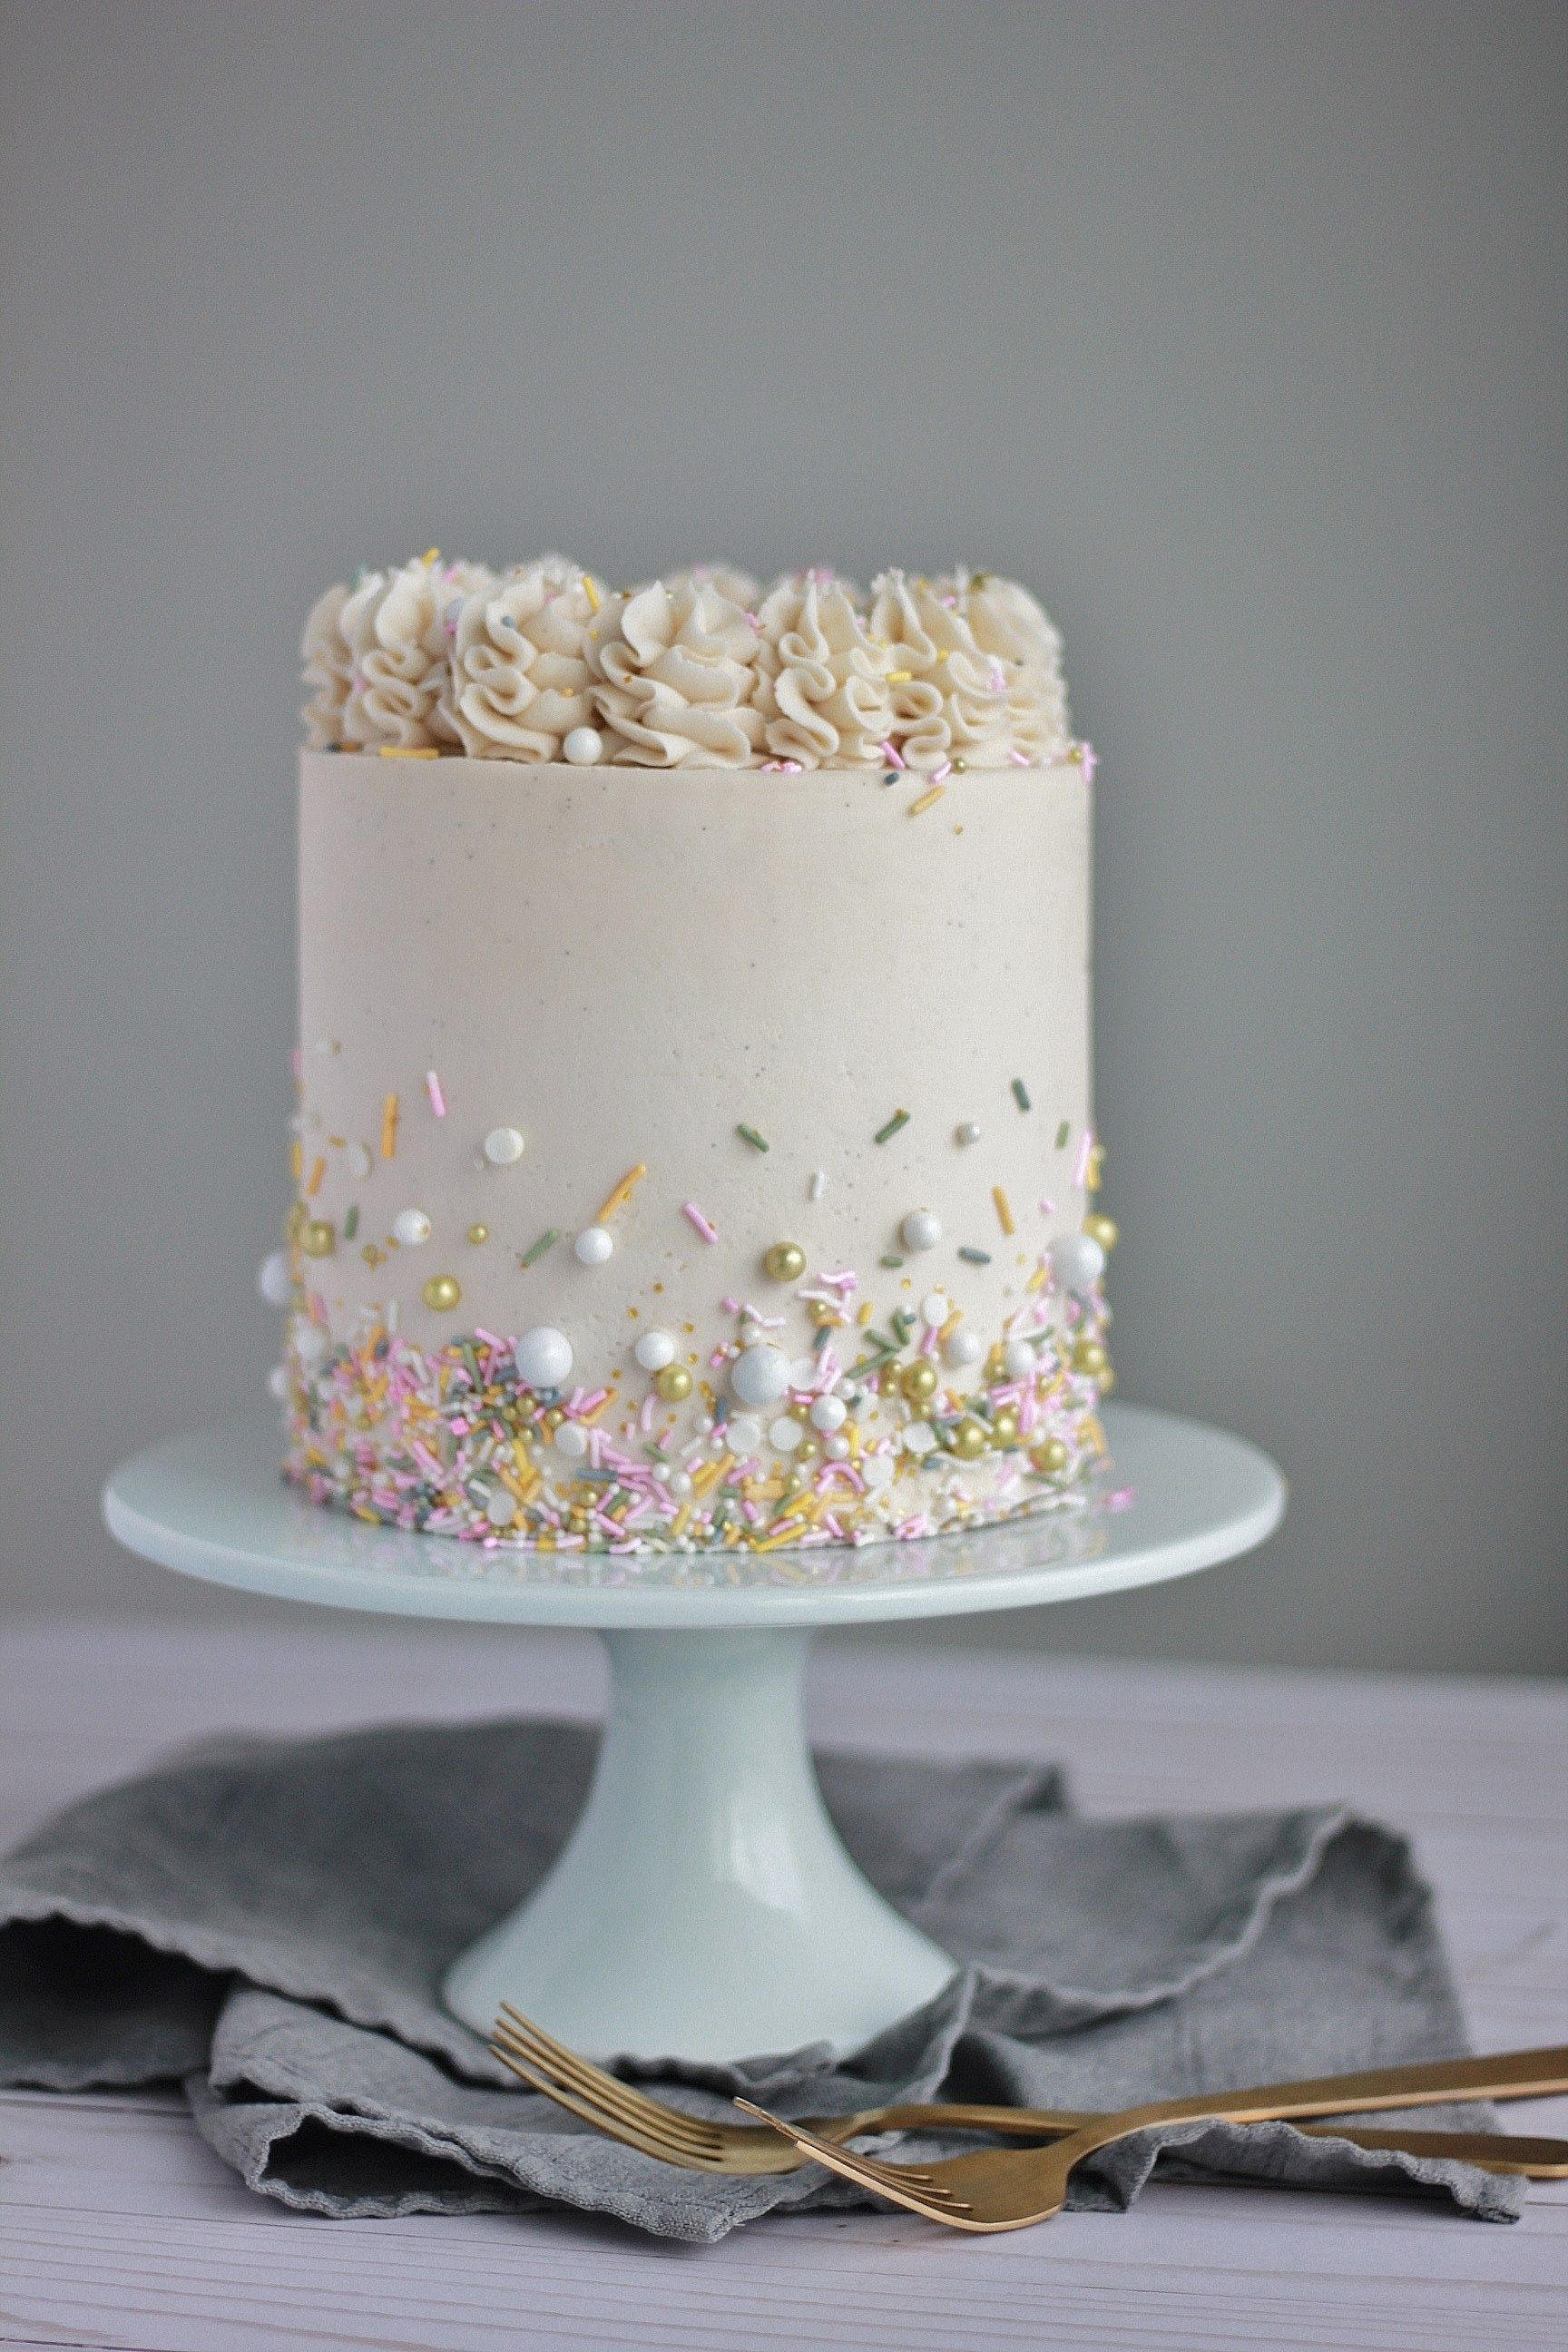 White Cake With Vanilla Buttercream Baking With Blondie Recipe Creative Cake Decorating Butter Cream White Cake